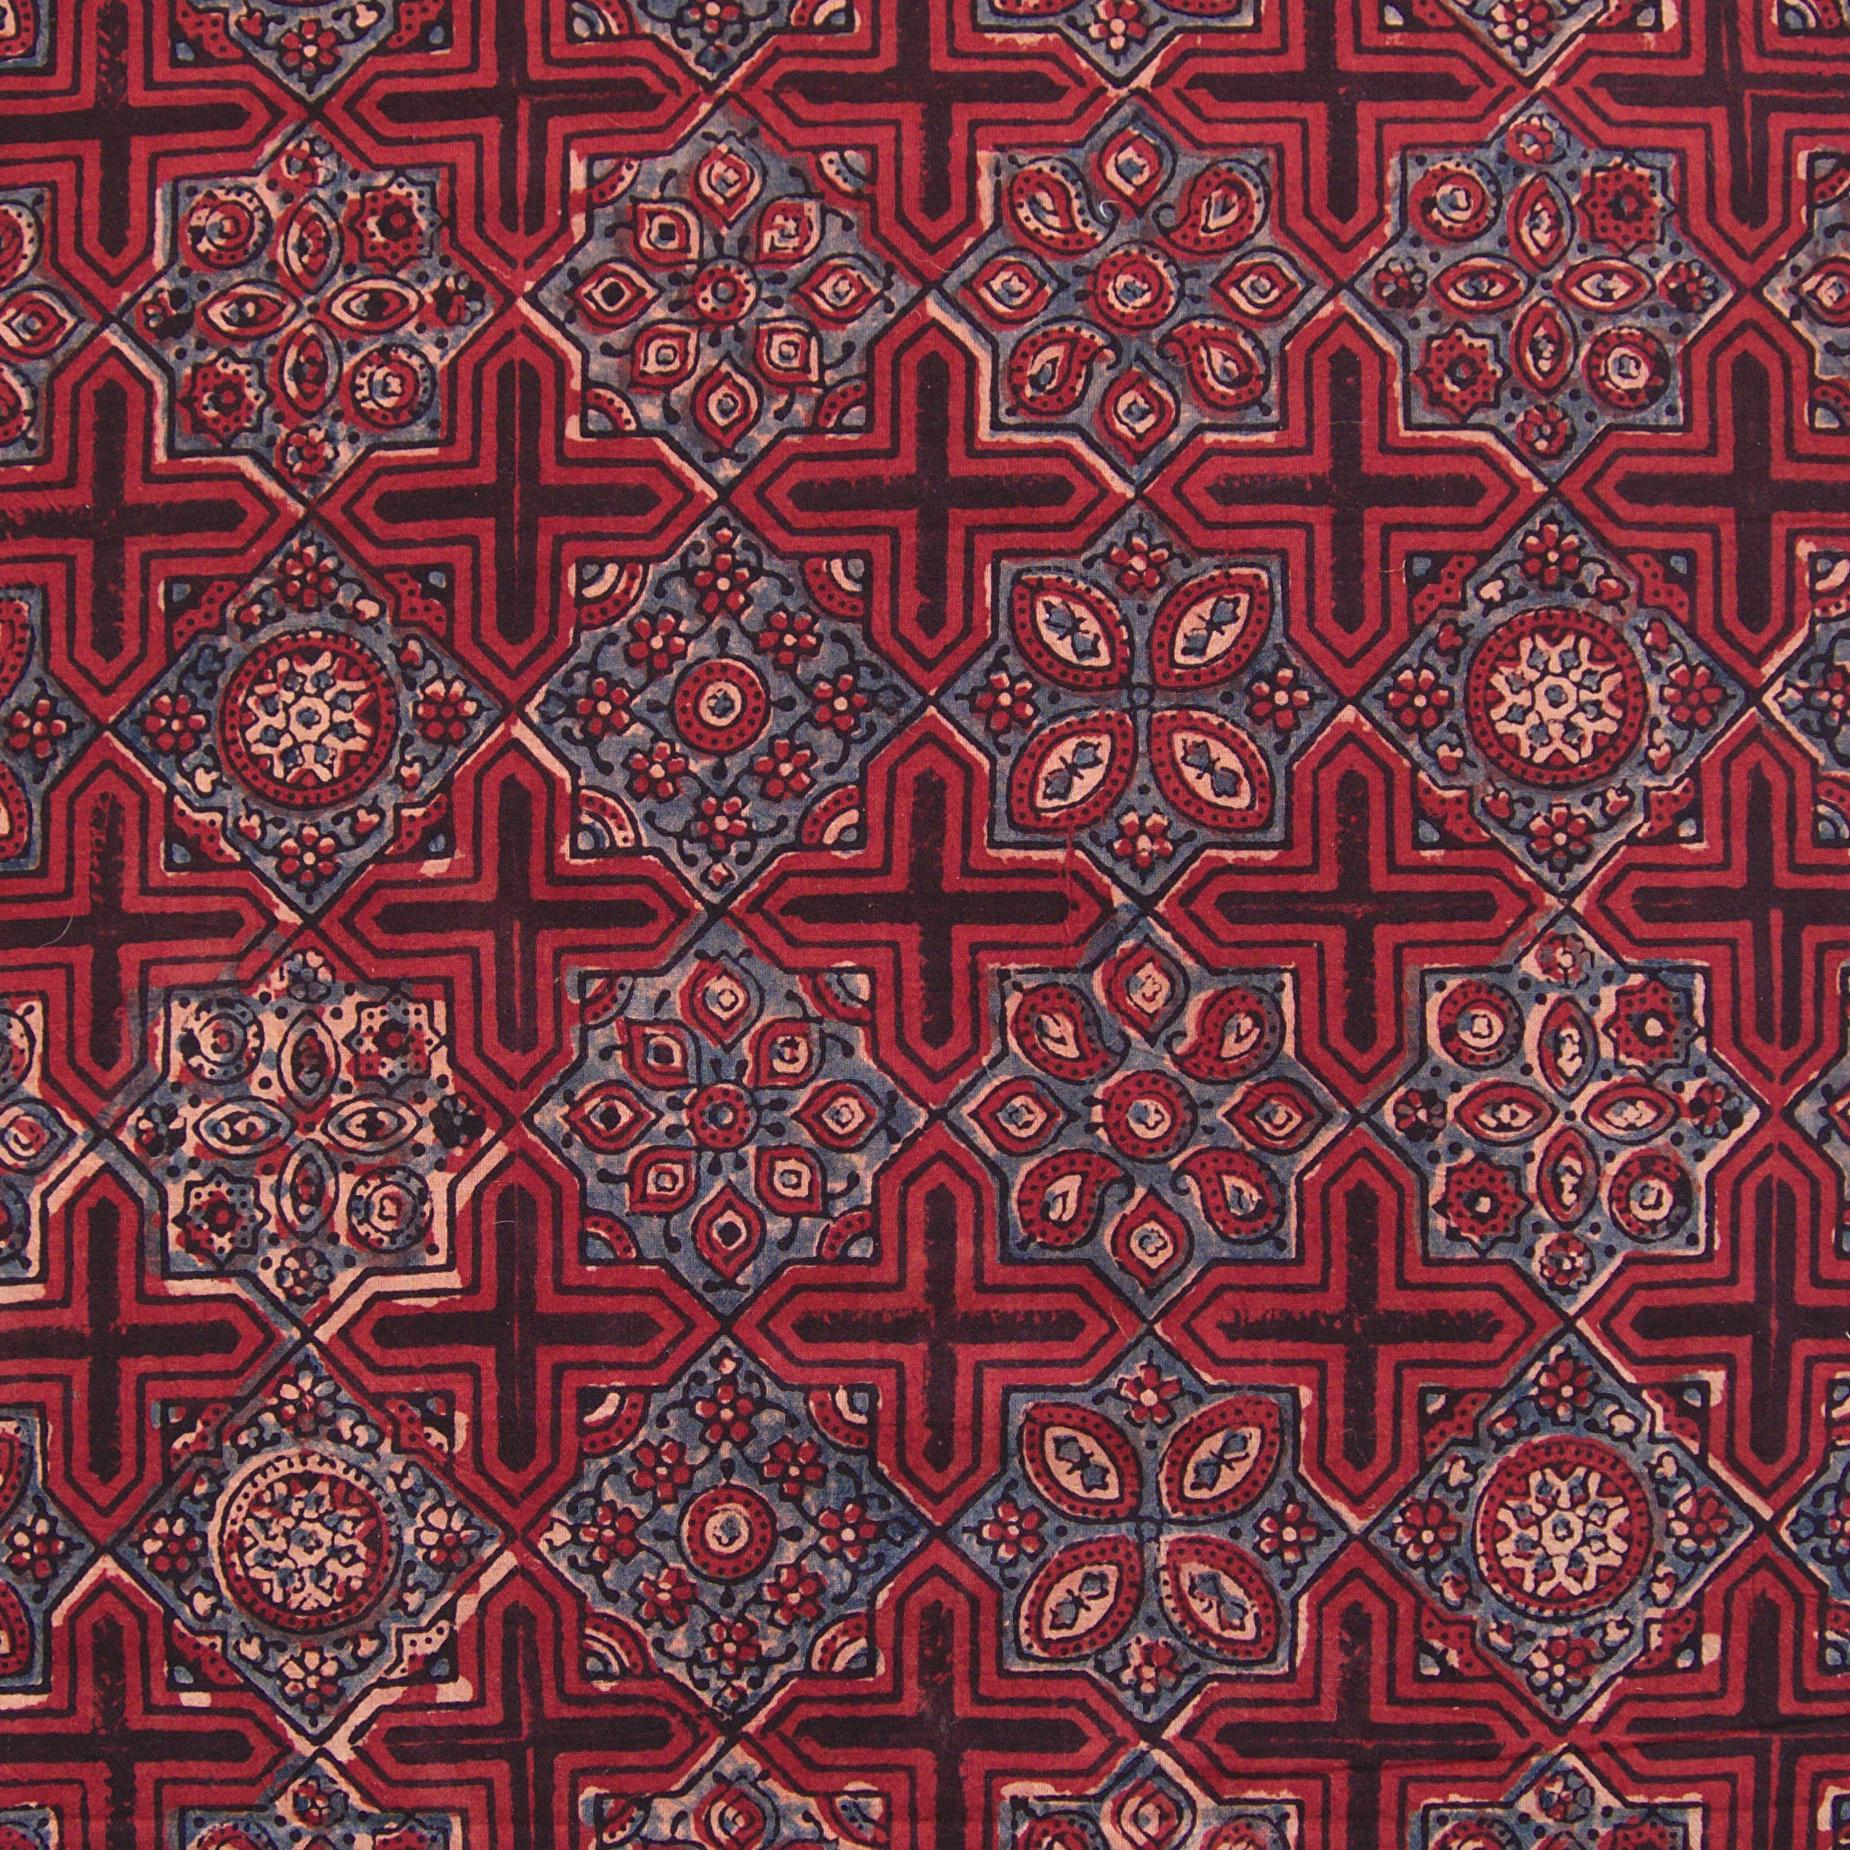 Block Printed Fabric, 100% Cotton, Ajrak Design: Red Base, Black Cross, Blue Design. Close Up